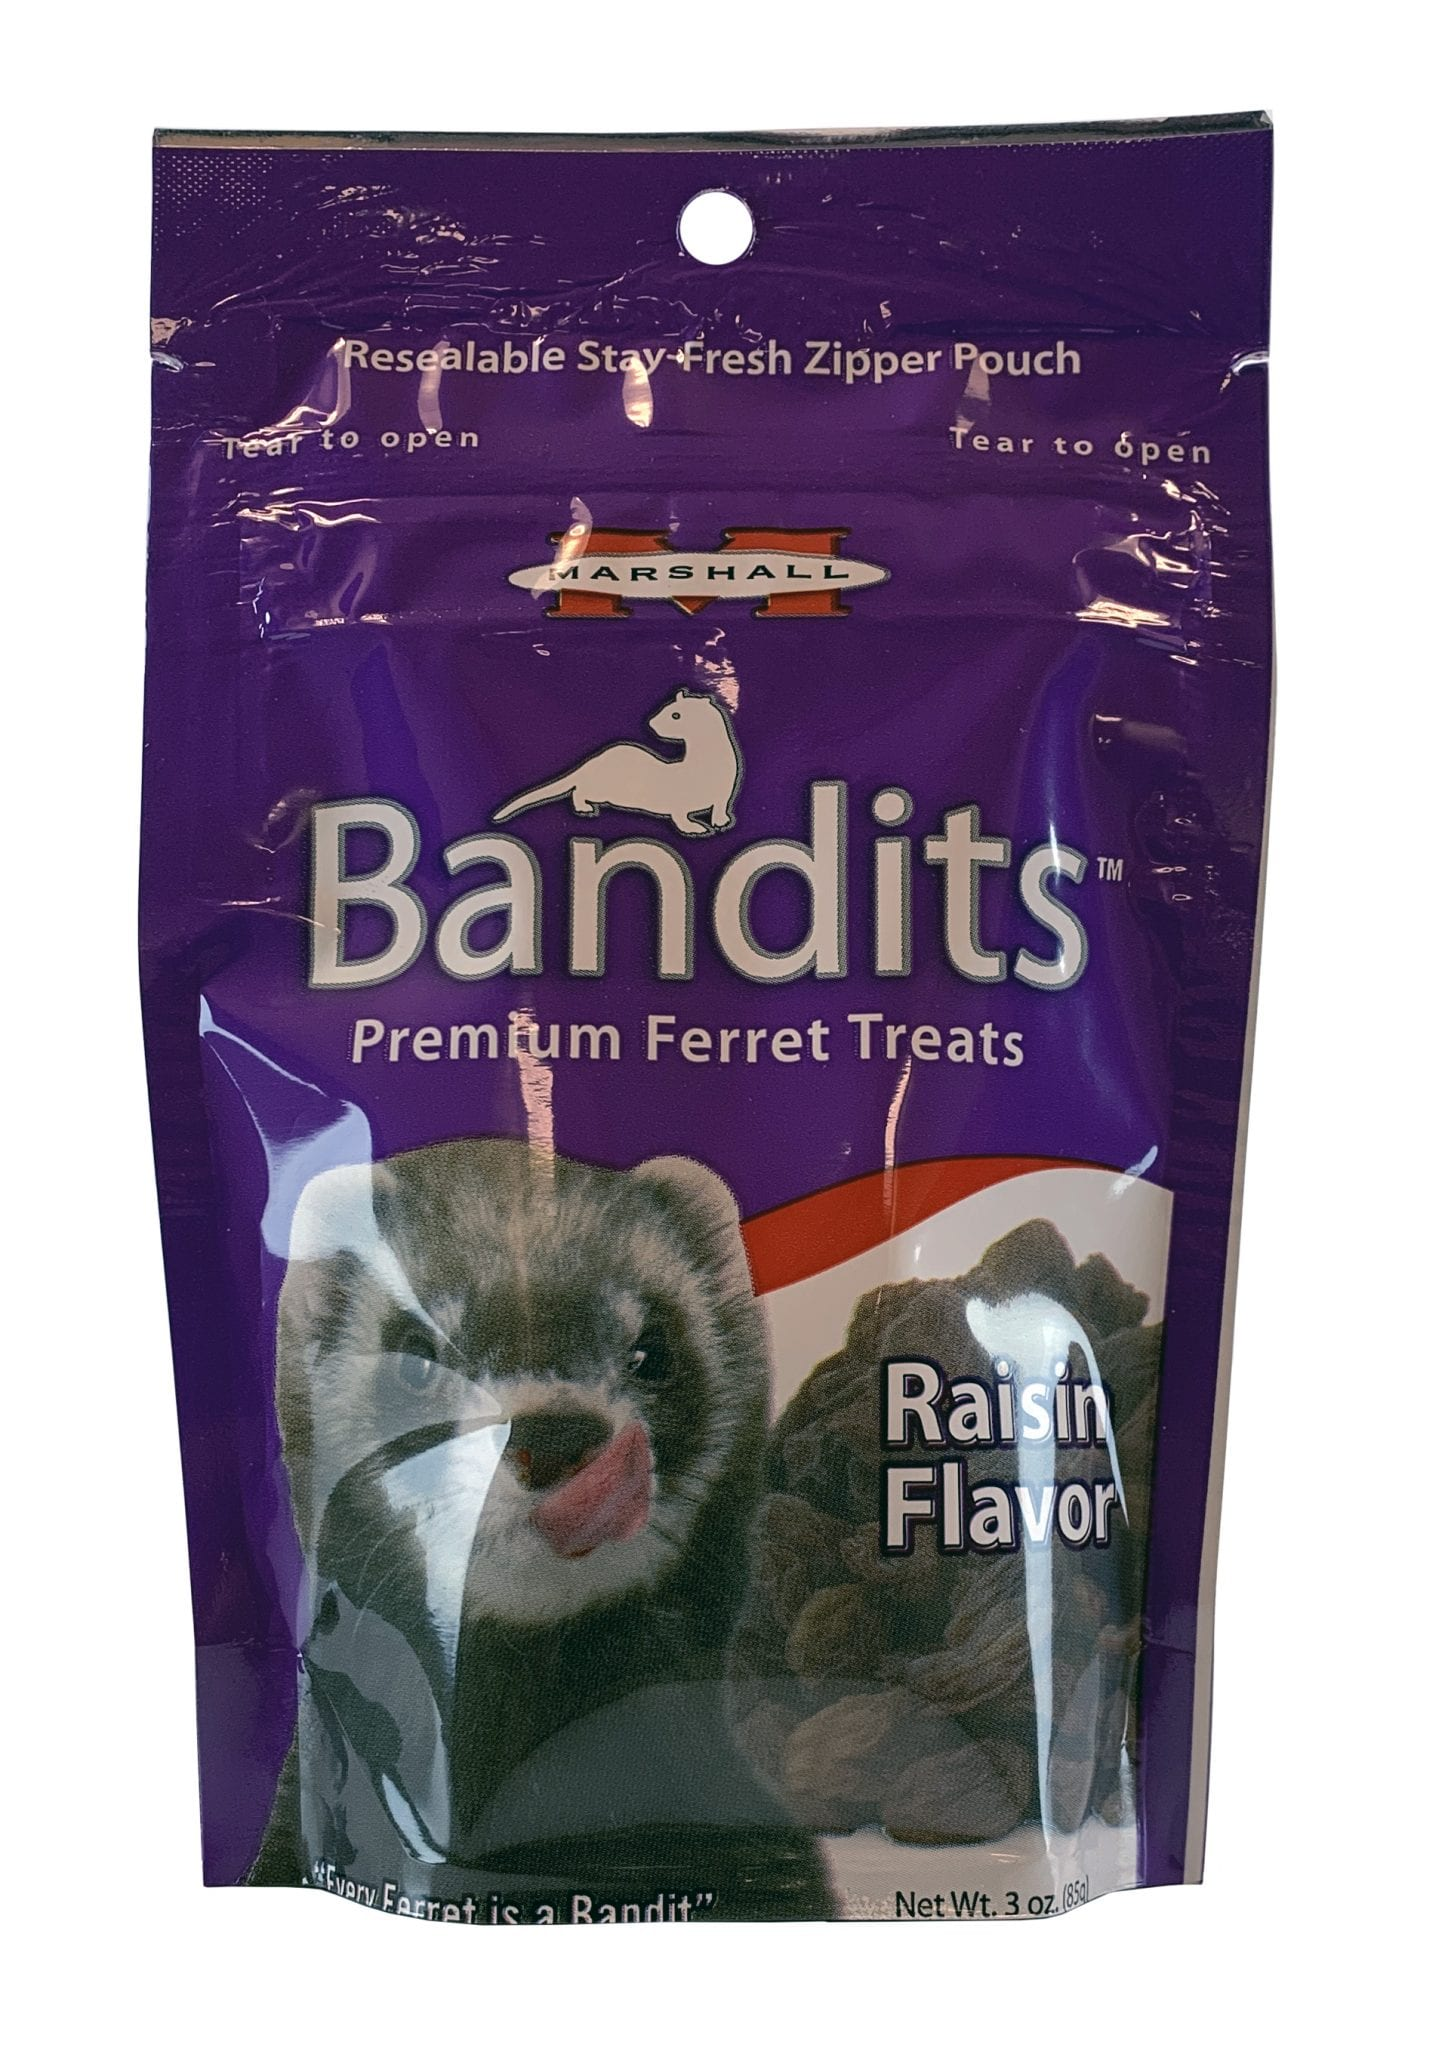 Bandits Premium Ferret Treats, Raisin Flavor